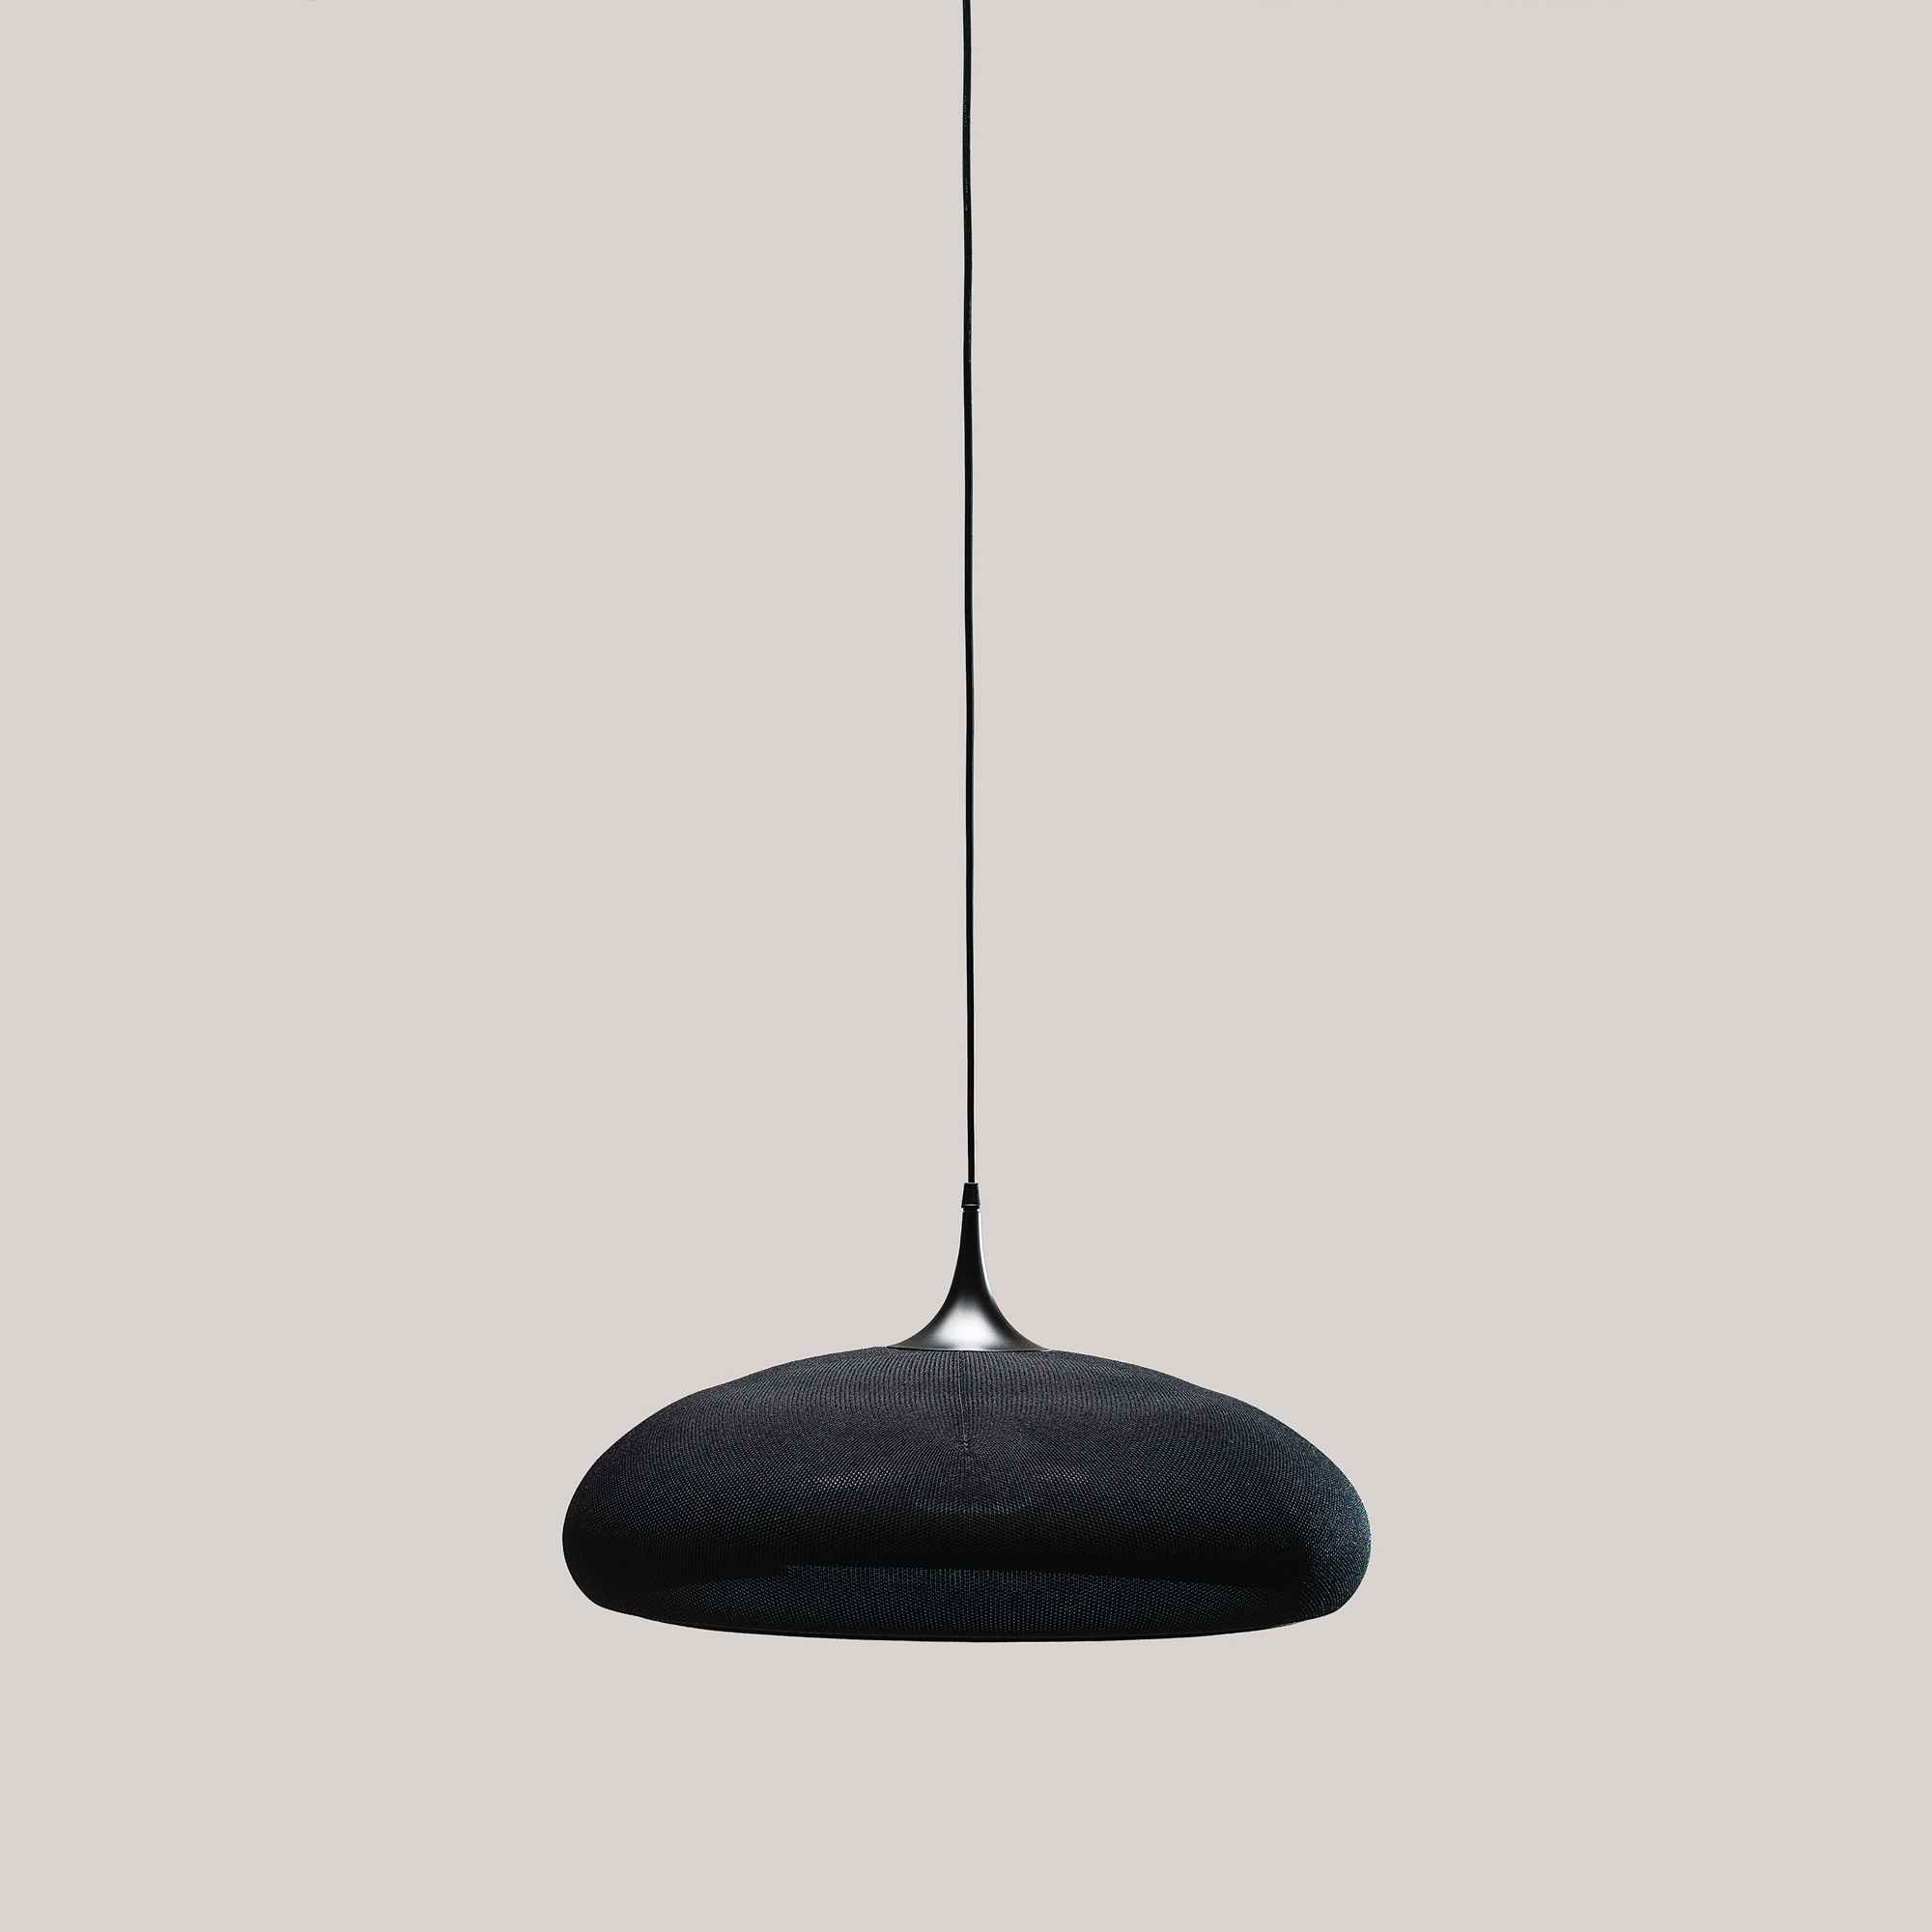 contemporary italian designer paros suspension lamp italian designer luxury furniture at cassoni. Black Bedroom Furniture Sets. Home Design Ideas